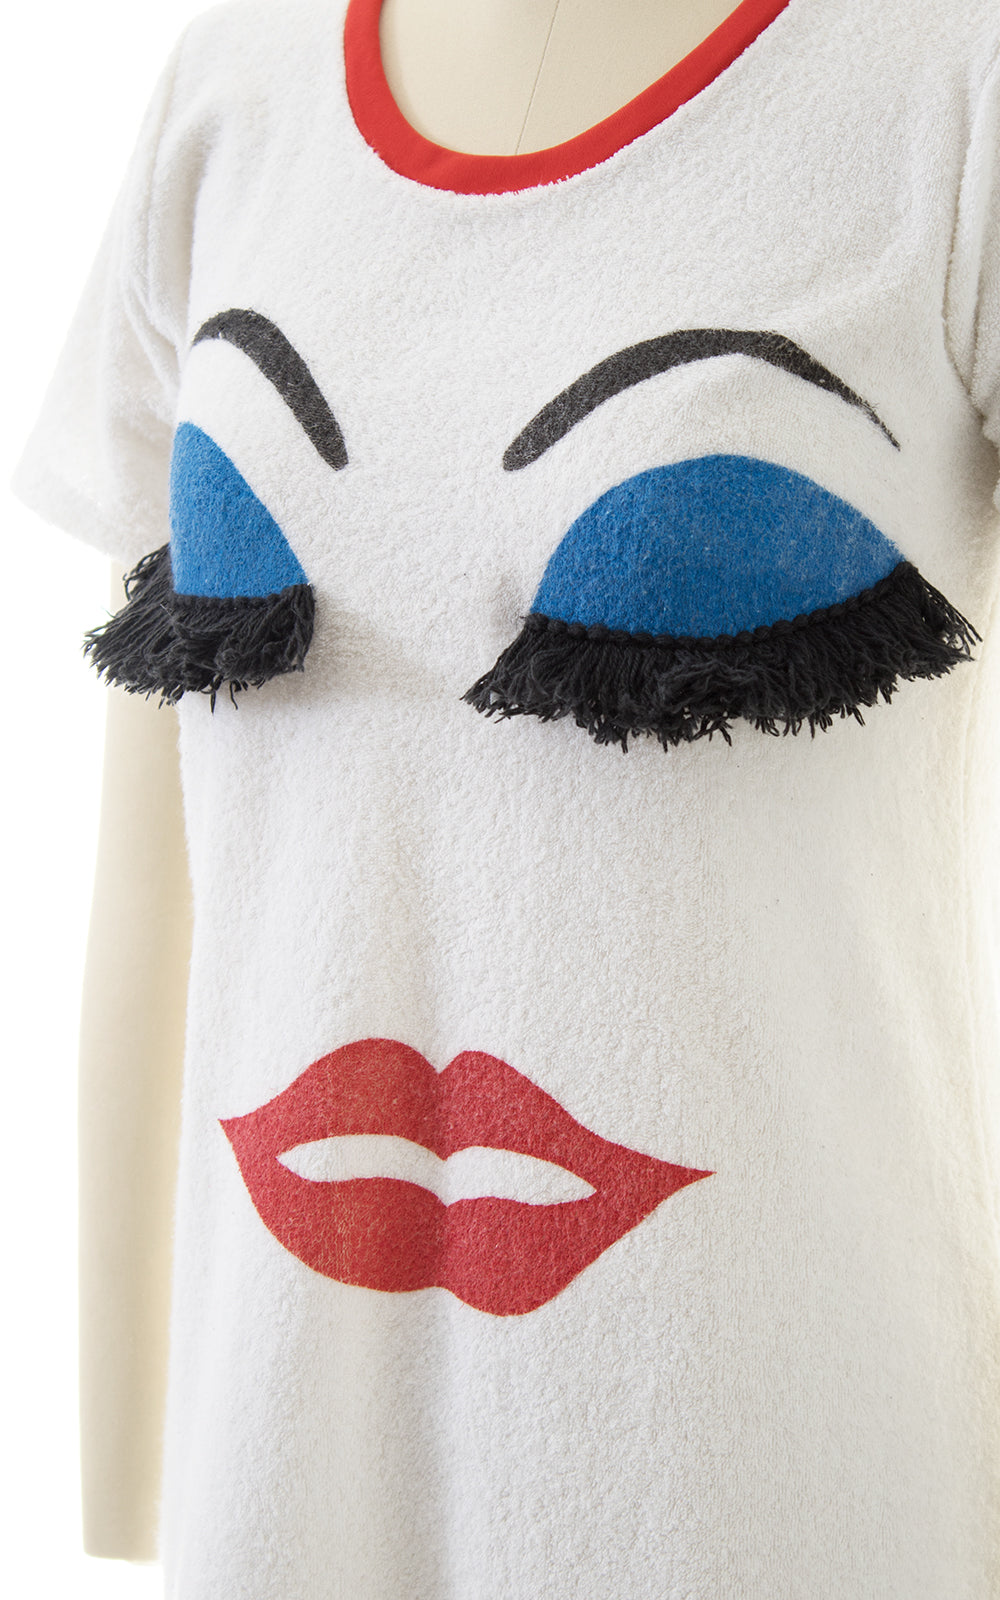 1980s Makeup Face Novelty Terrycloth Dress with Fringe Eyelashes